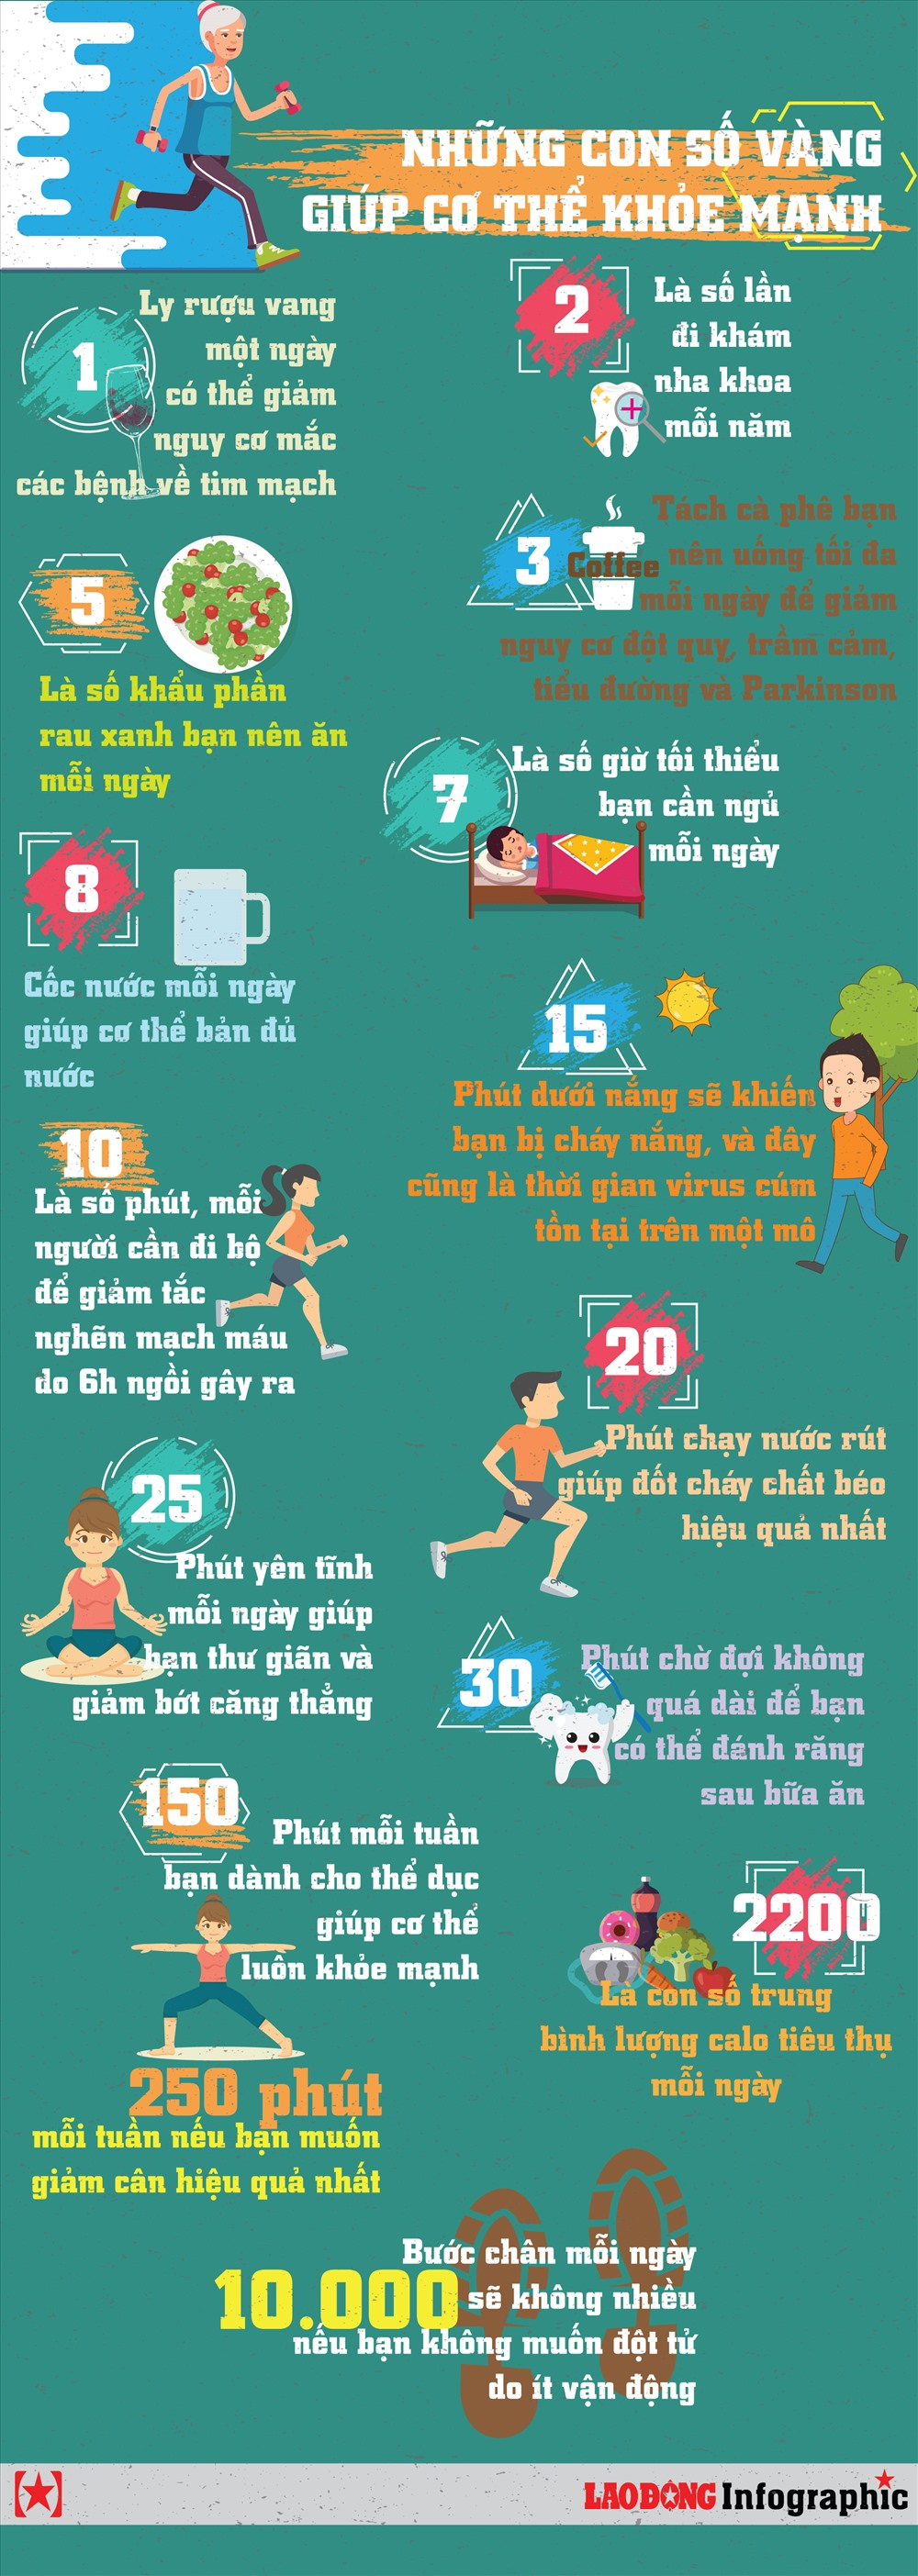 infographic nhung con so vang giup co the ban khoe manh day suc song